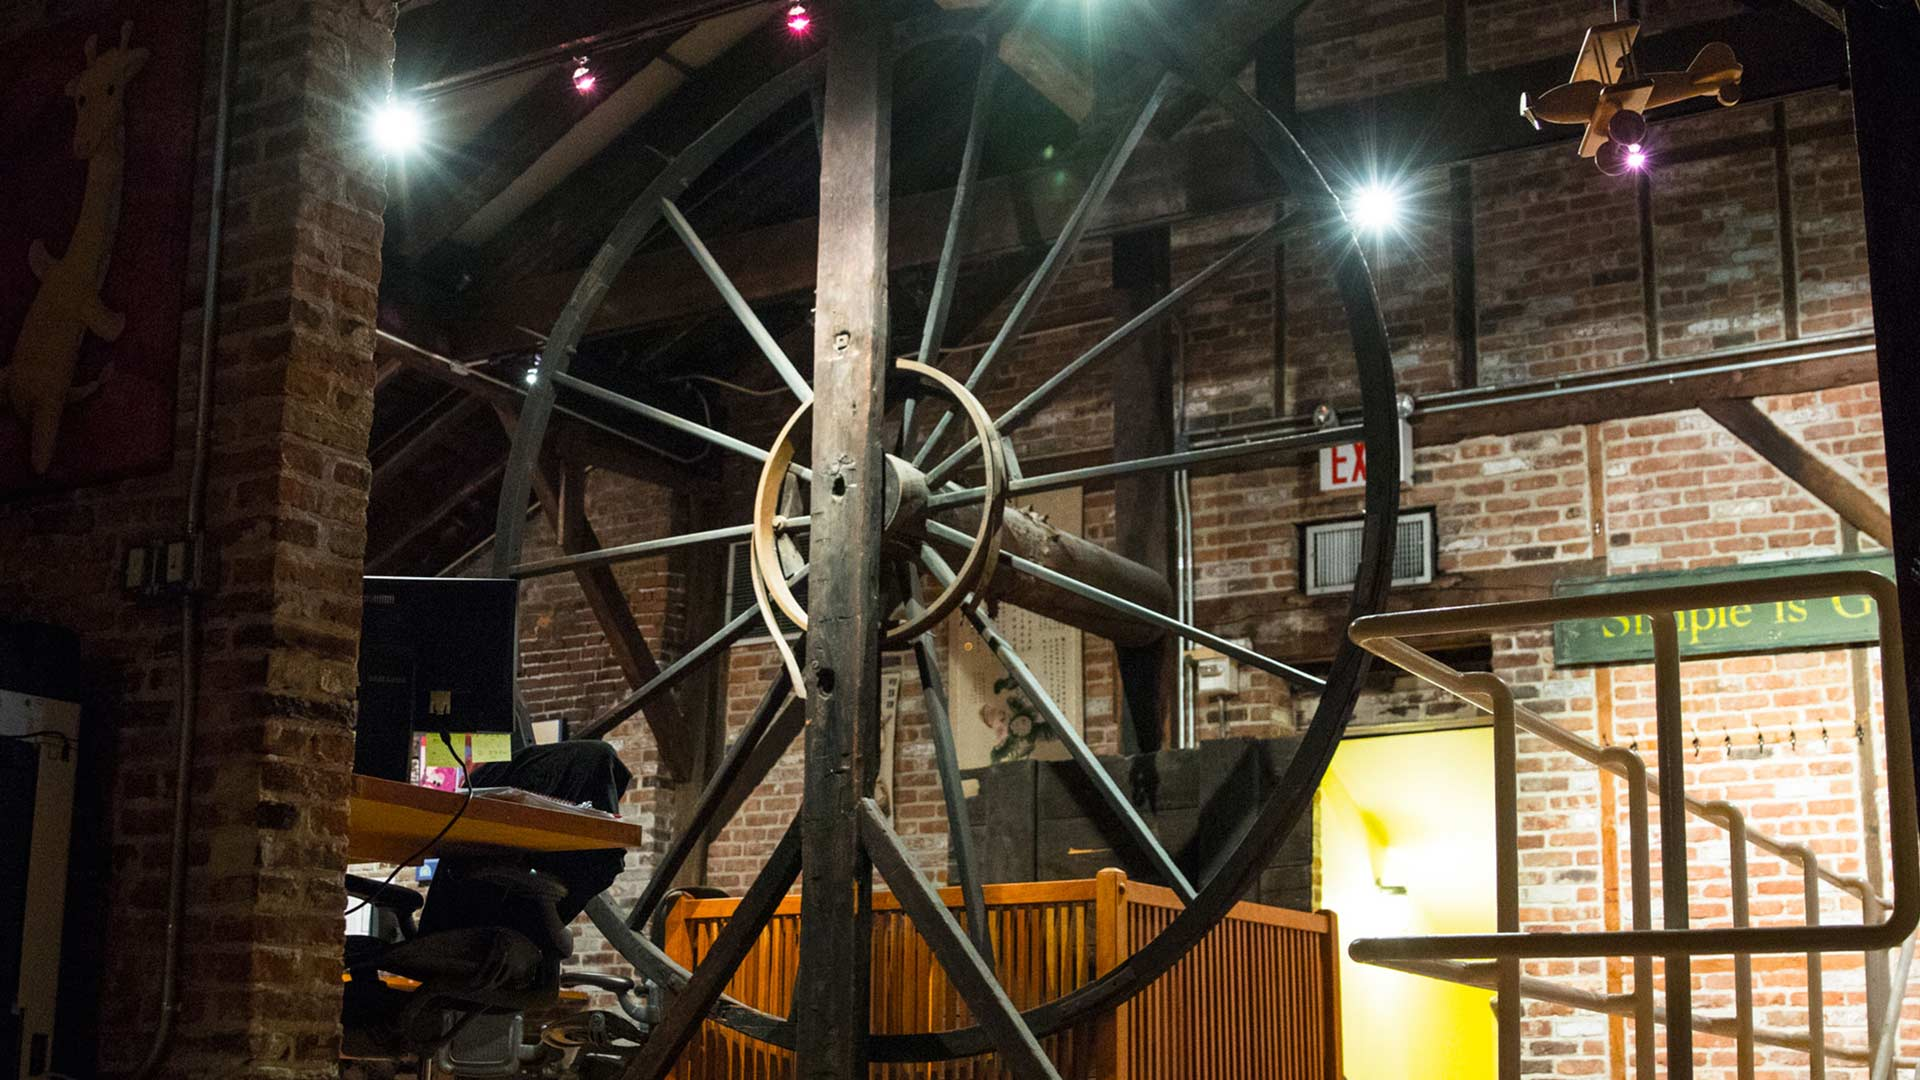 The wheel used to lift and lower cargo off boats 200 years ago is still here!